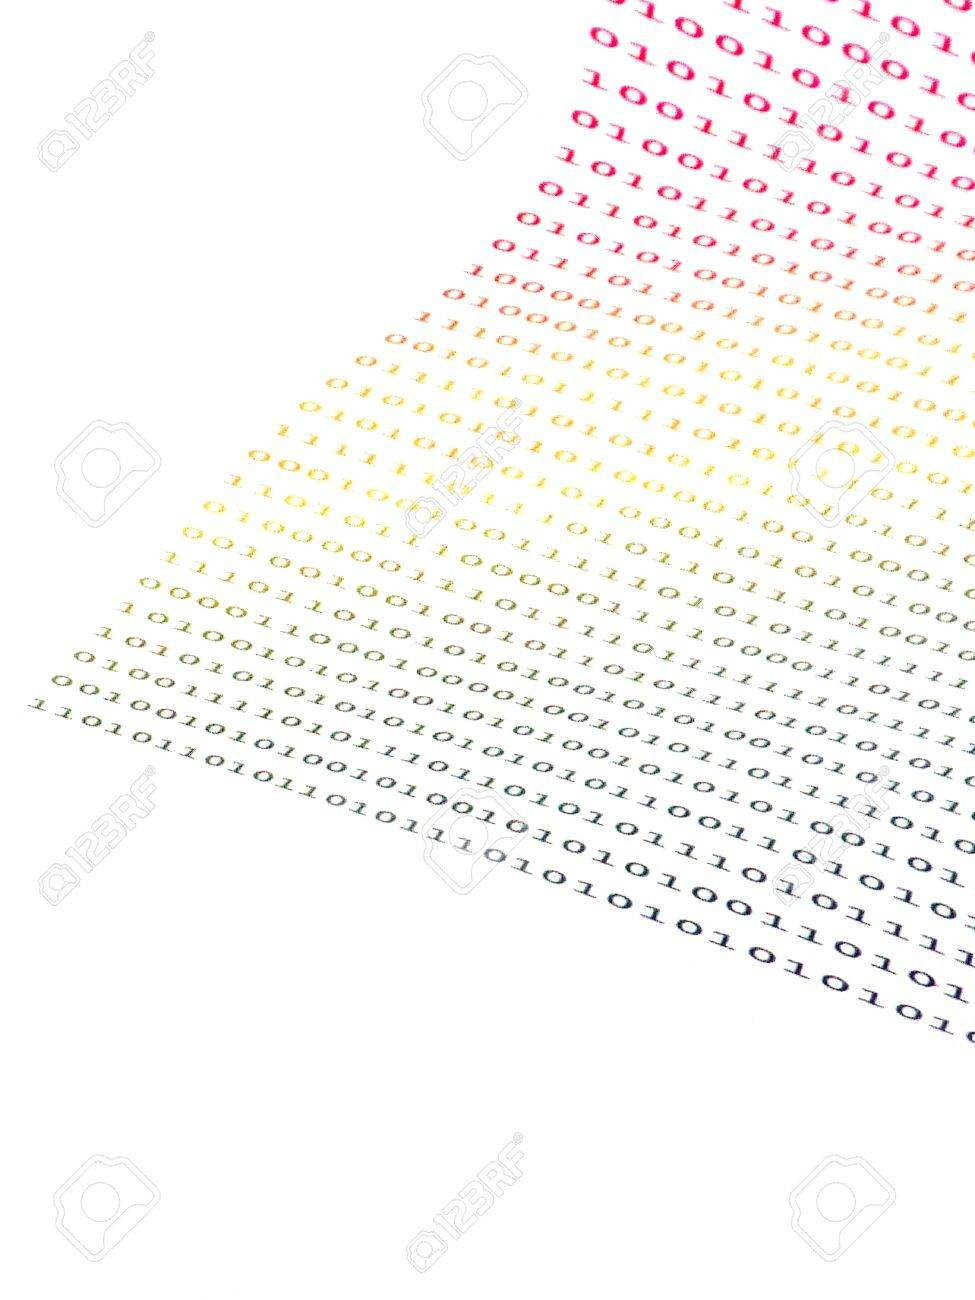 binary numbers on white background Stock Photo - 11463808